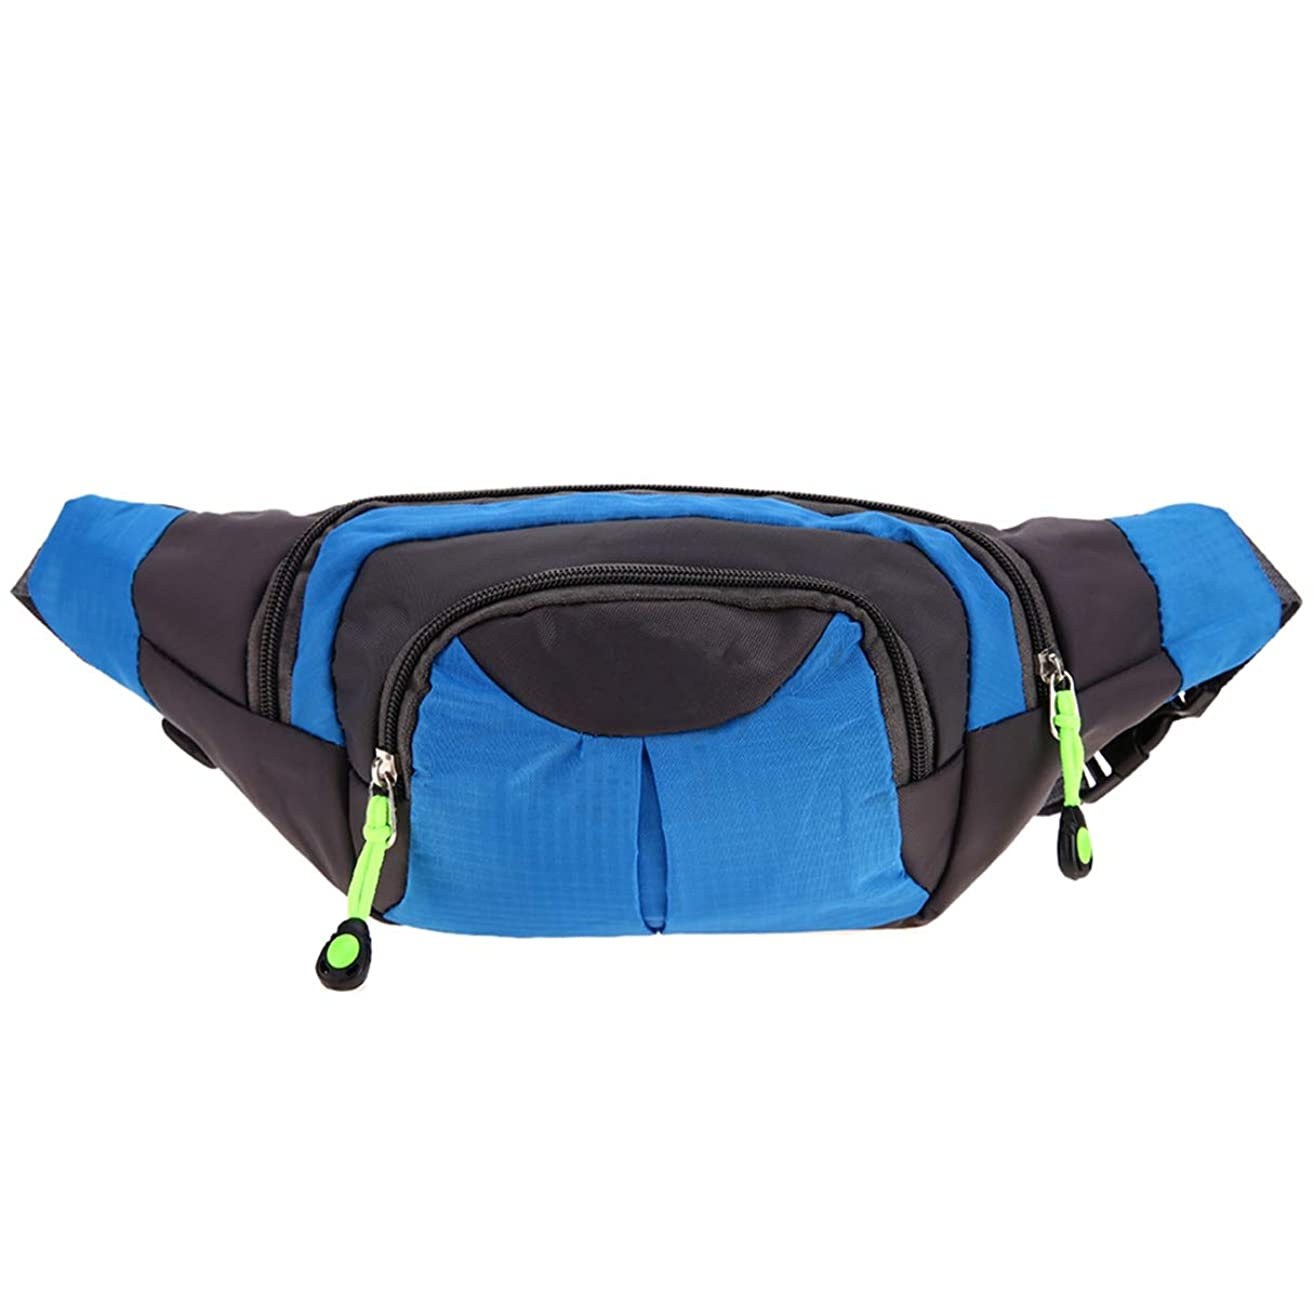 1 Set Jogging Running Water Bag Utility Money Storage Waterproof Pockets Portable Belts Fits Small Bottle Key Keychain Phone Plus Travel Foremost Popular Trainer Crossbody Shoulder Arm Bum Sports Bags